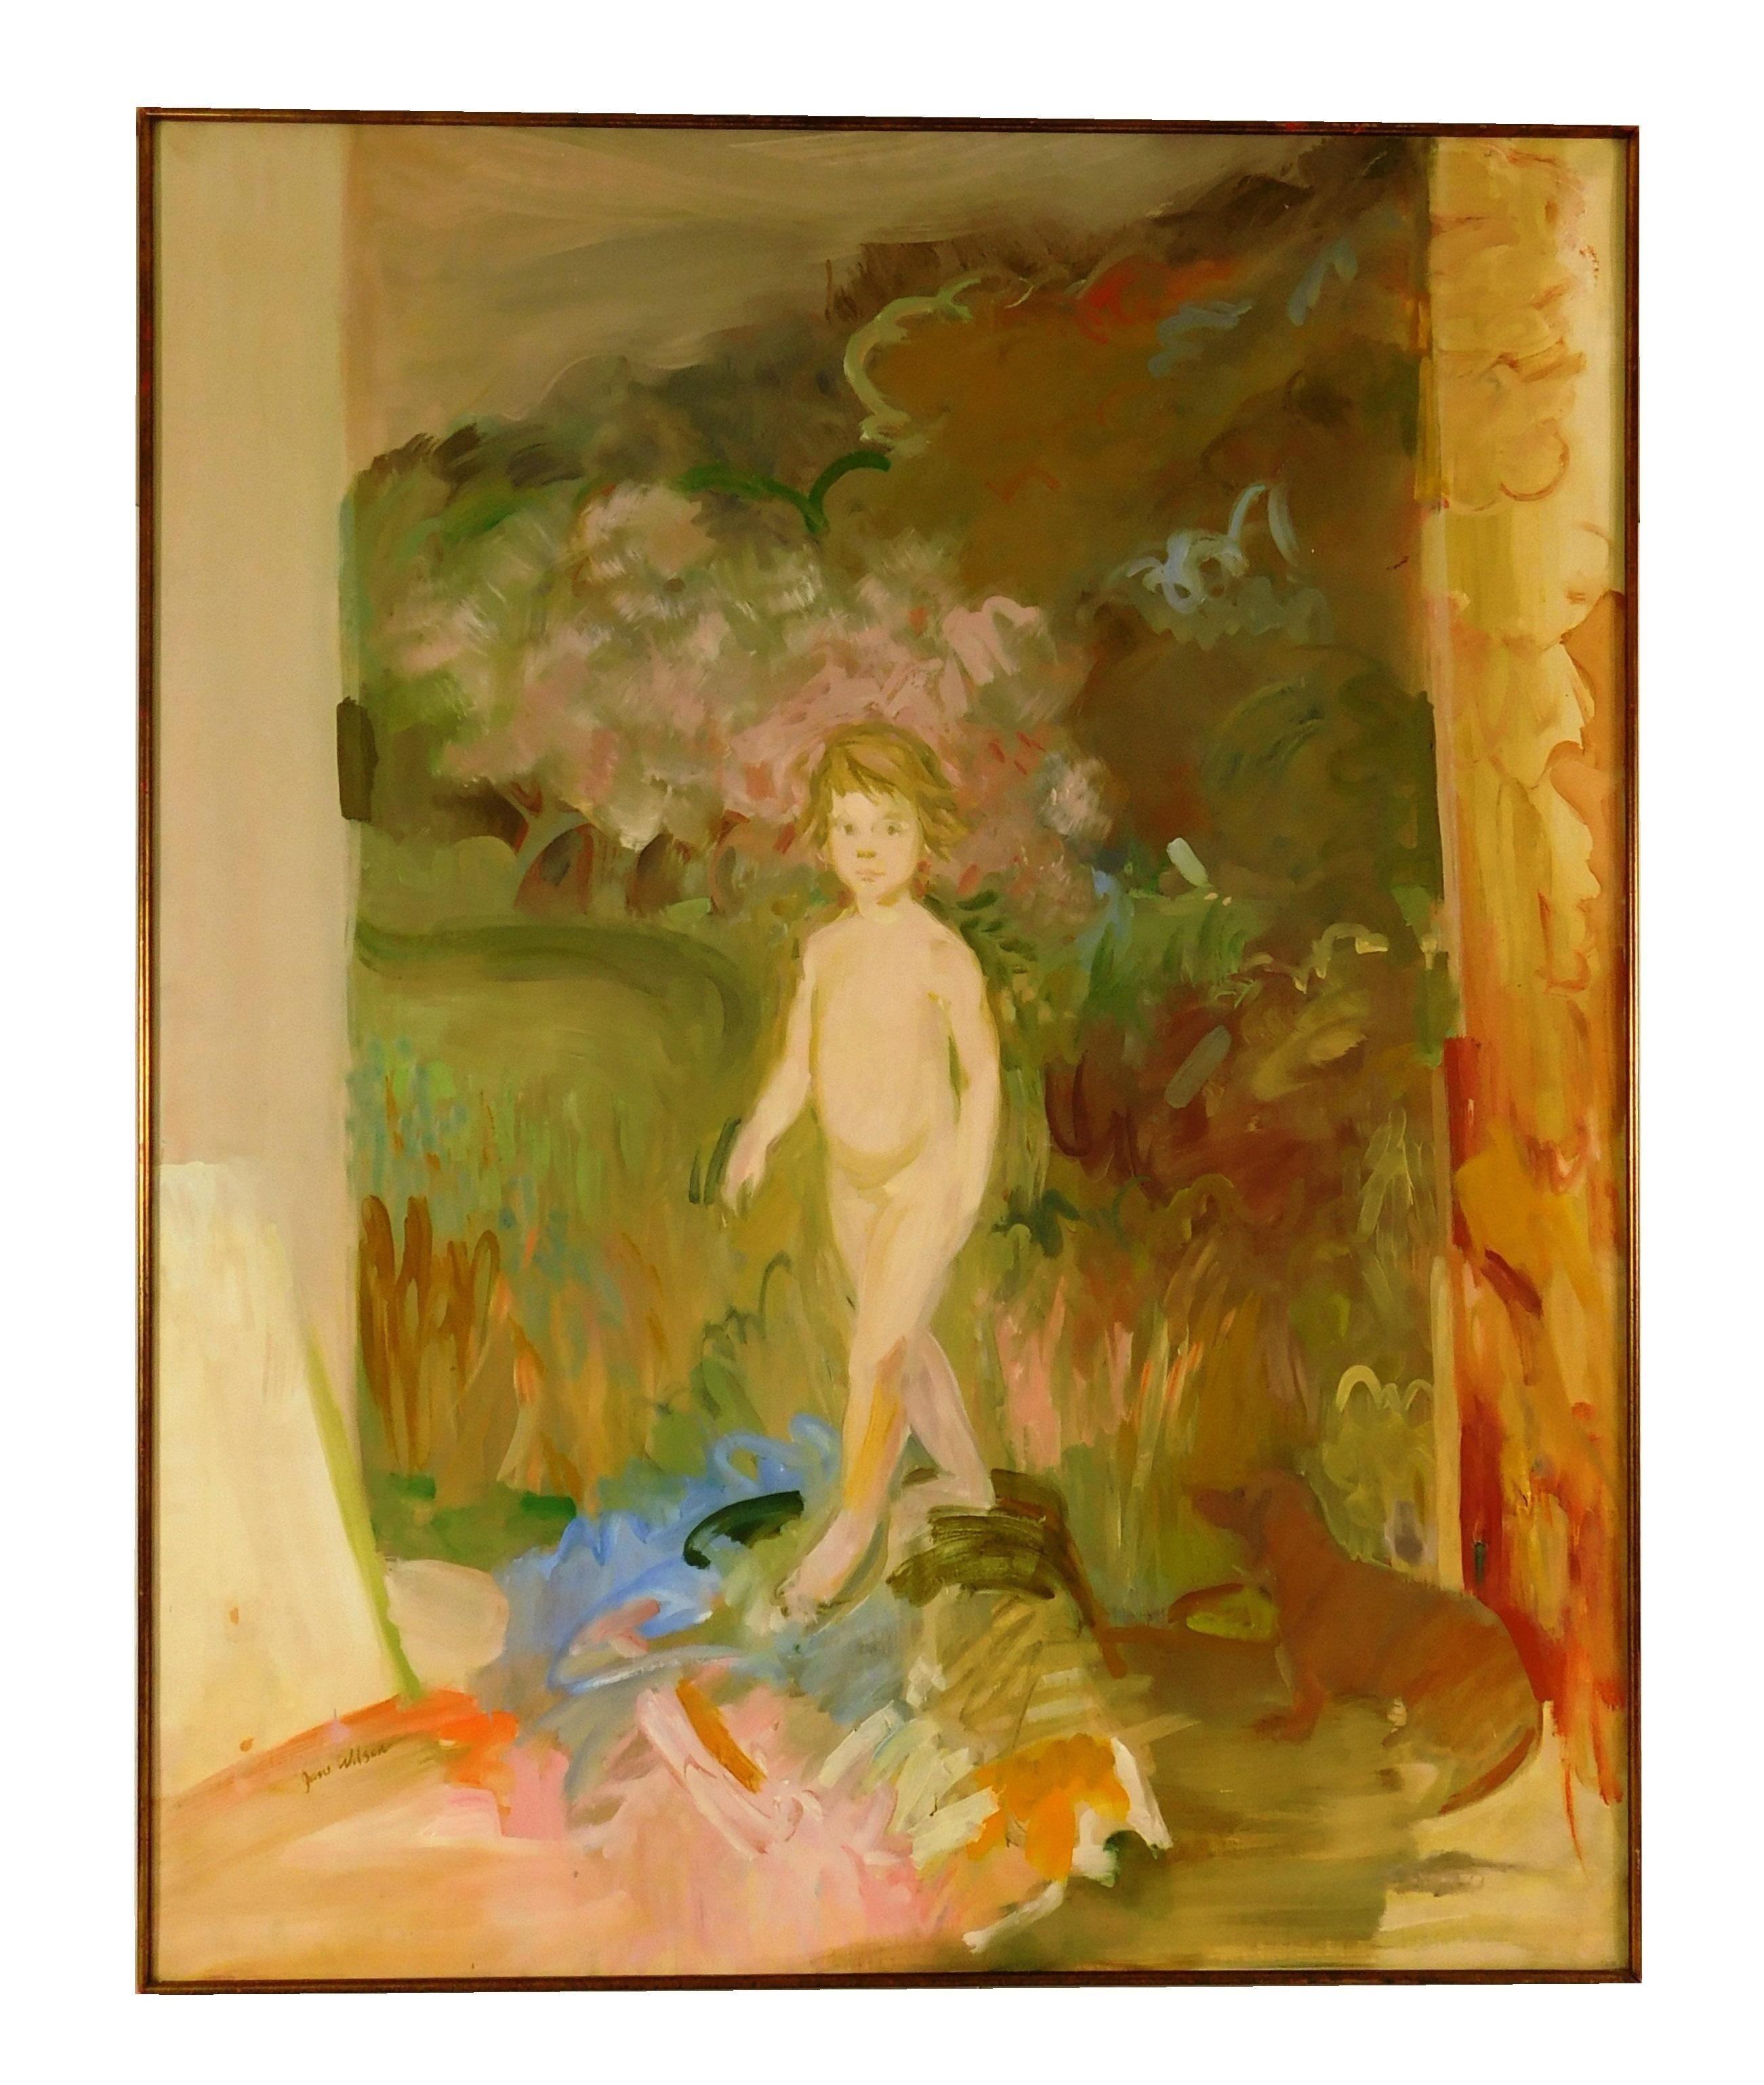 "Jane Wilson (American, 1924-2015), ""Bare Julia"", oil on canvas, depicts nude child walking through garden, small dog in lower right..."